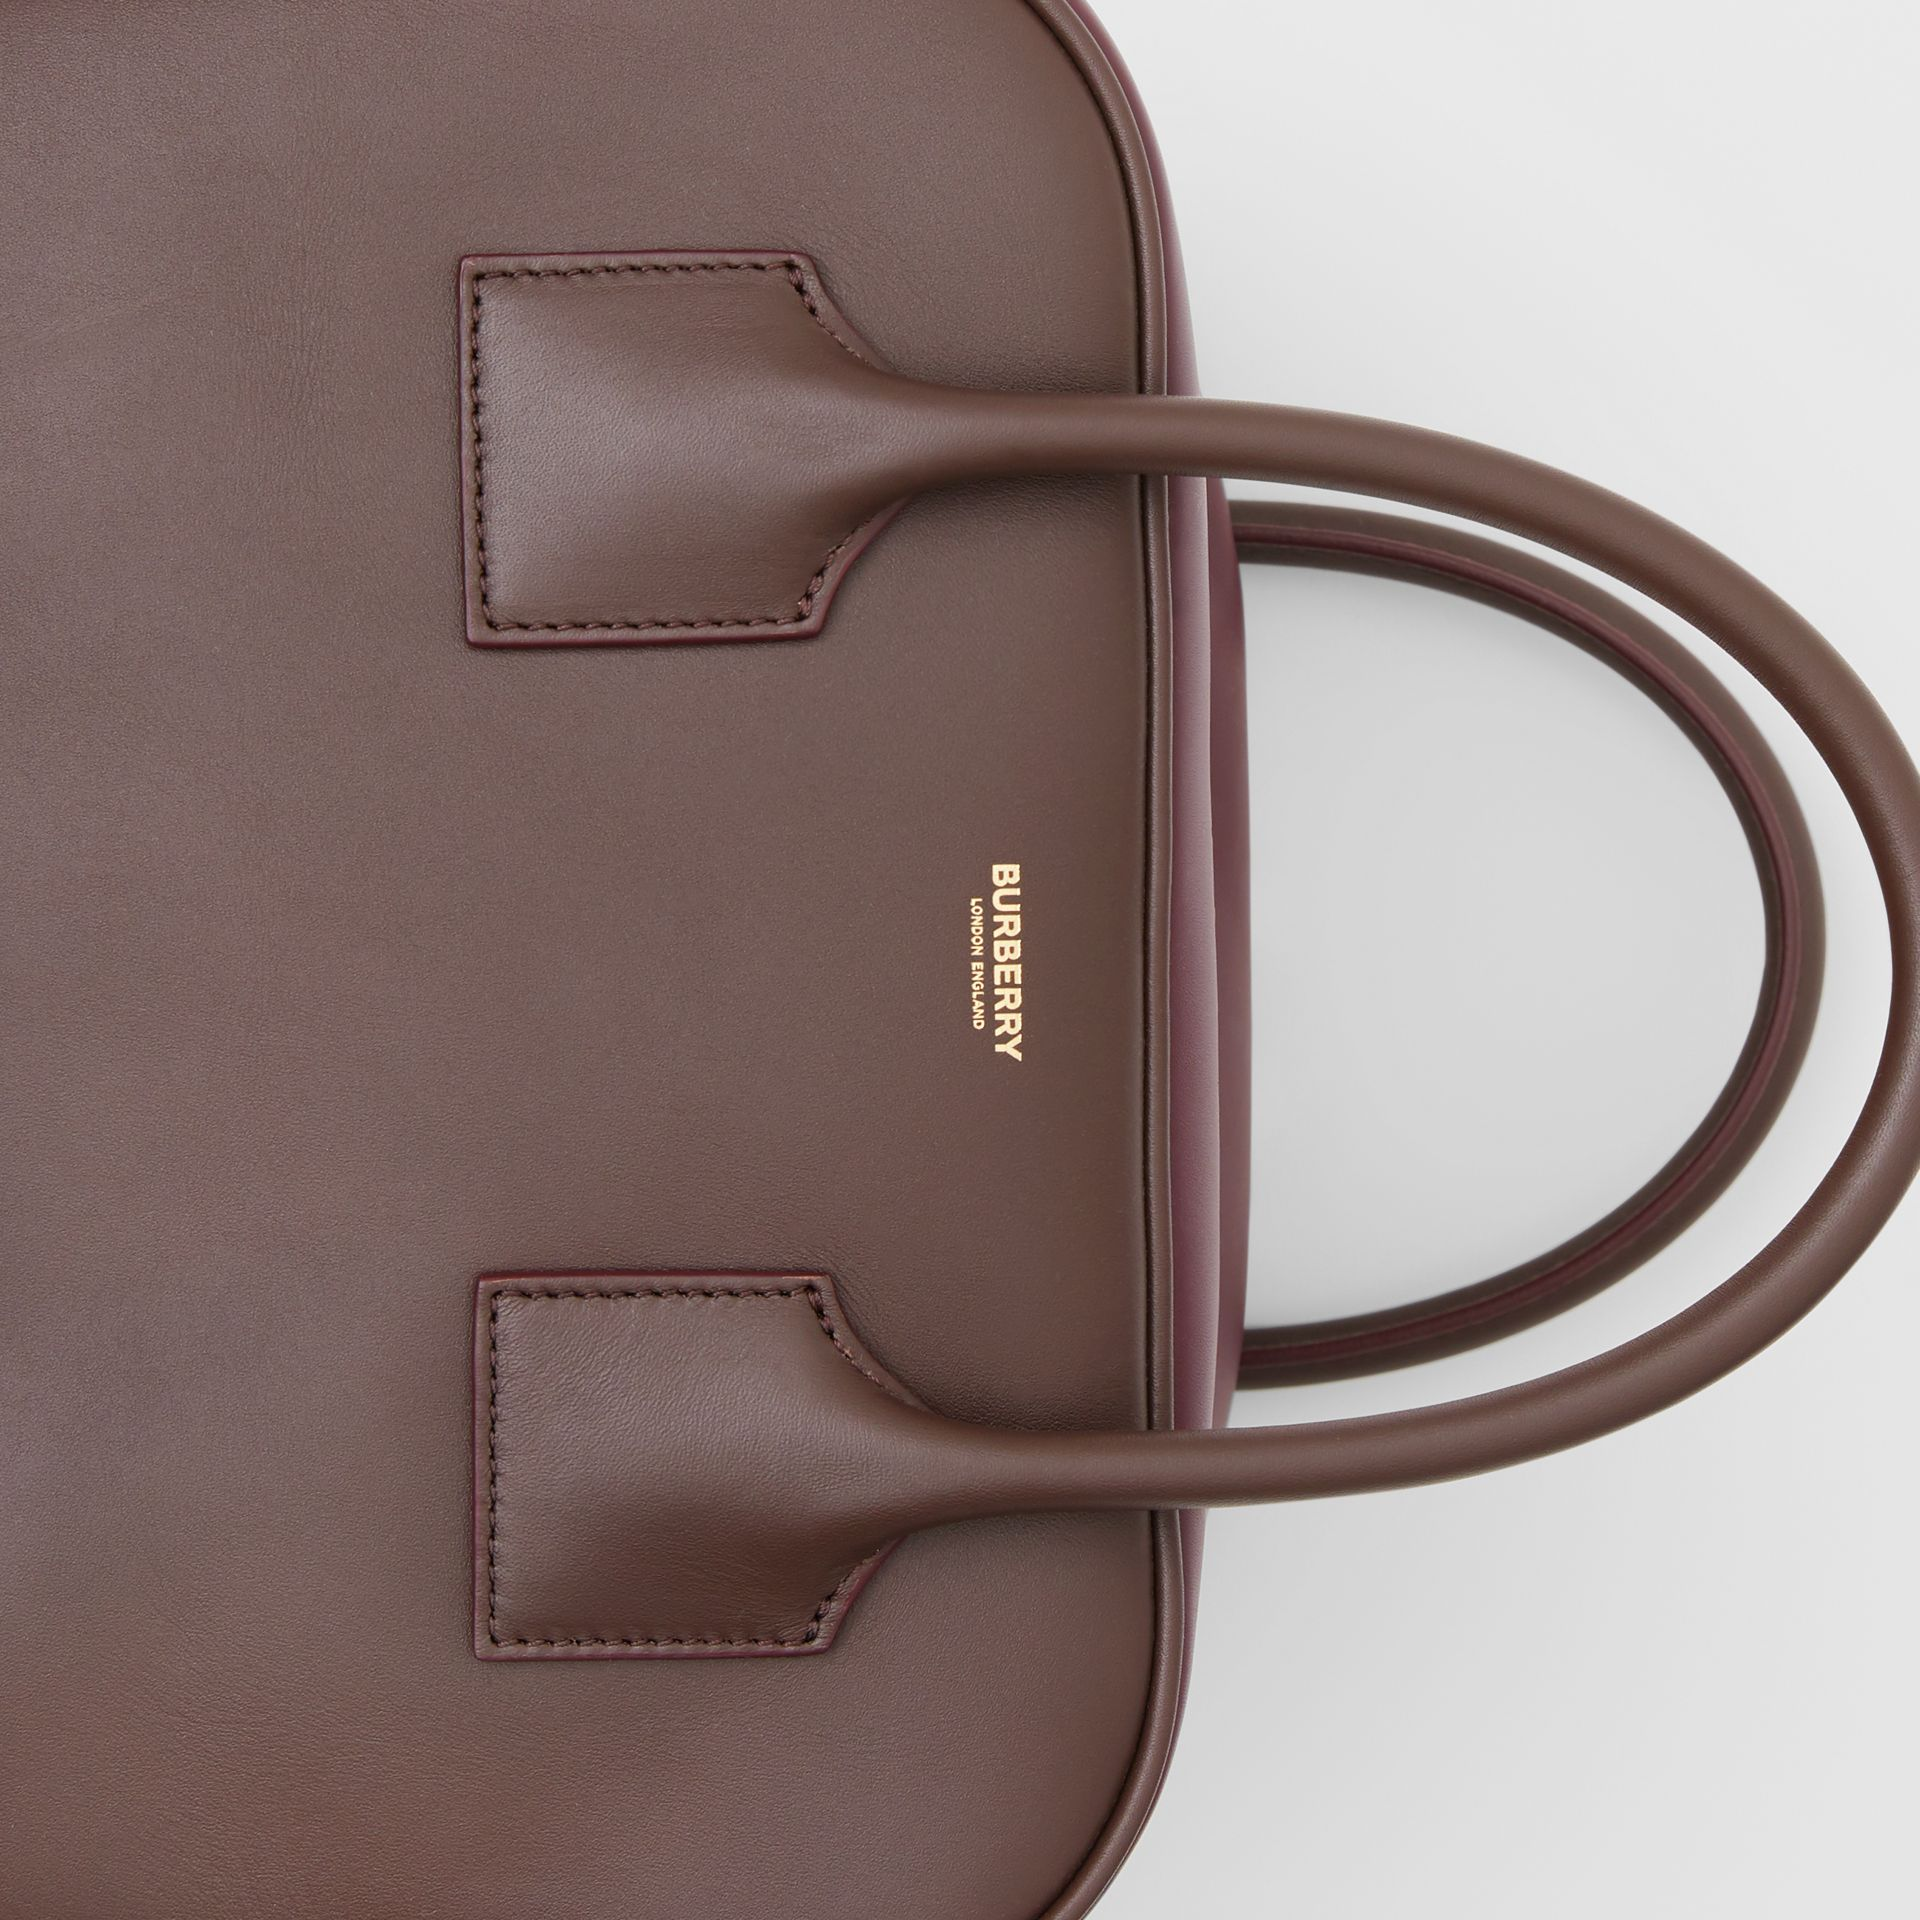 Medium Leather and Suede Cube Bag in Mahogany - Women | Burberry United States - gallery image 1